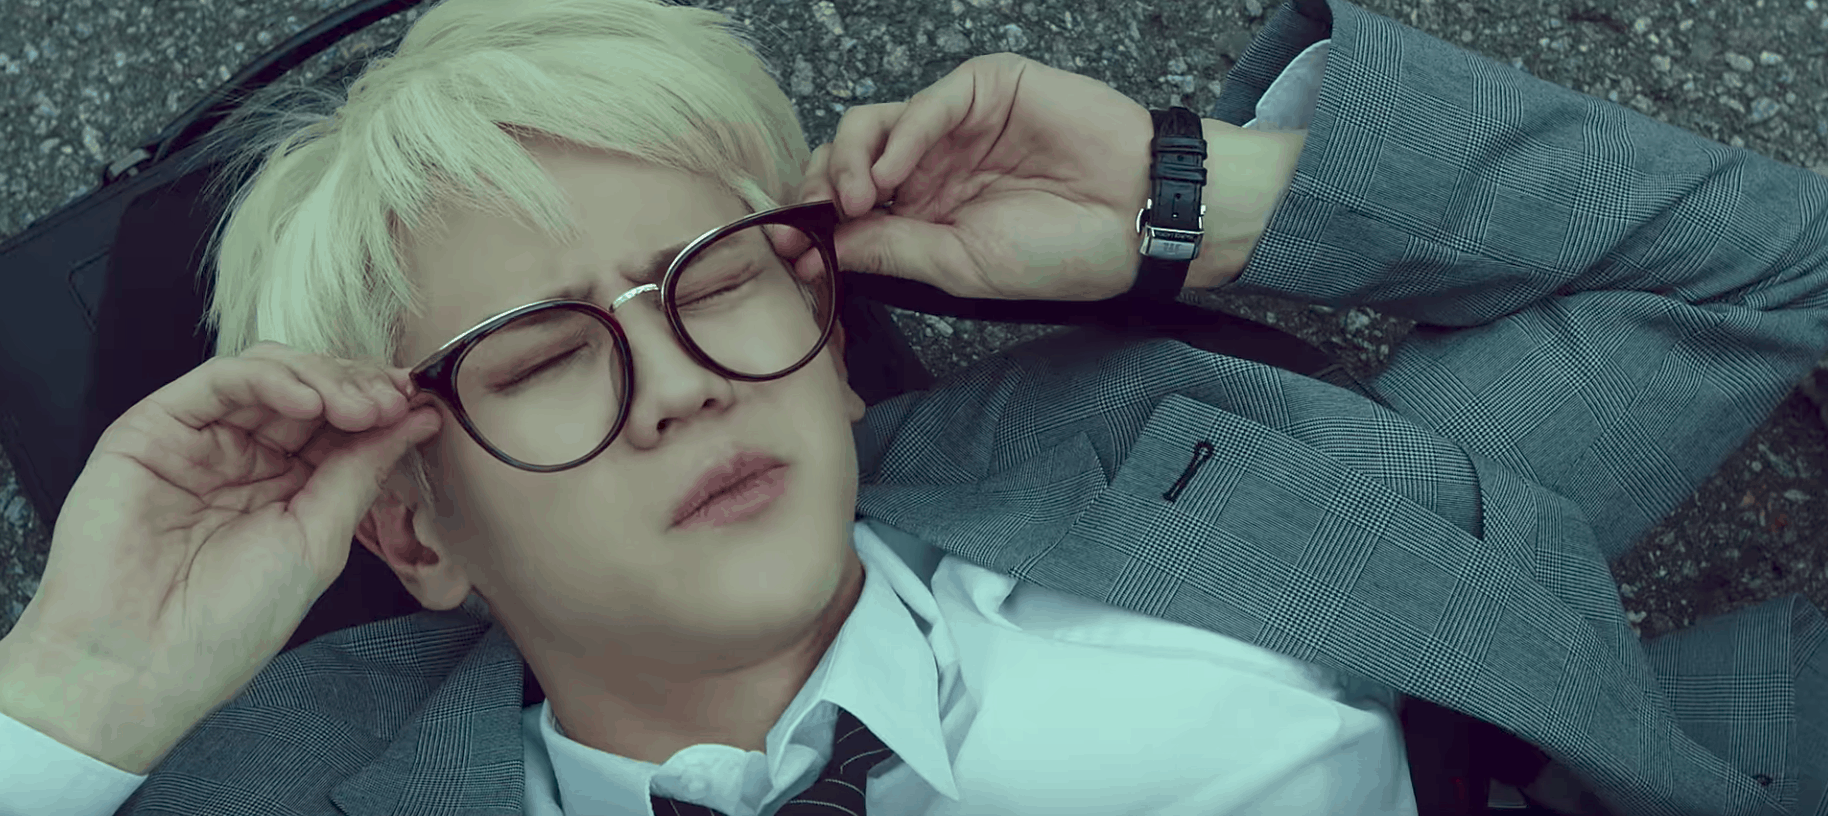 Highlight can be better music video - screenshot of band member with blond hair wearing glasses and lying on the ground